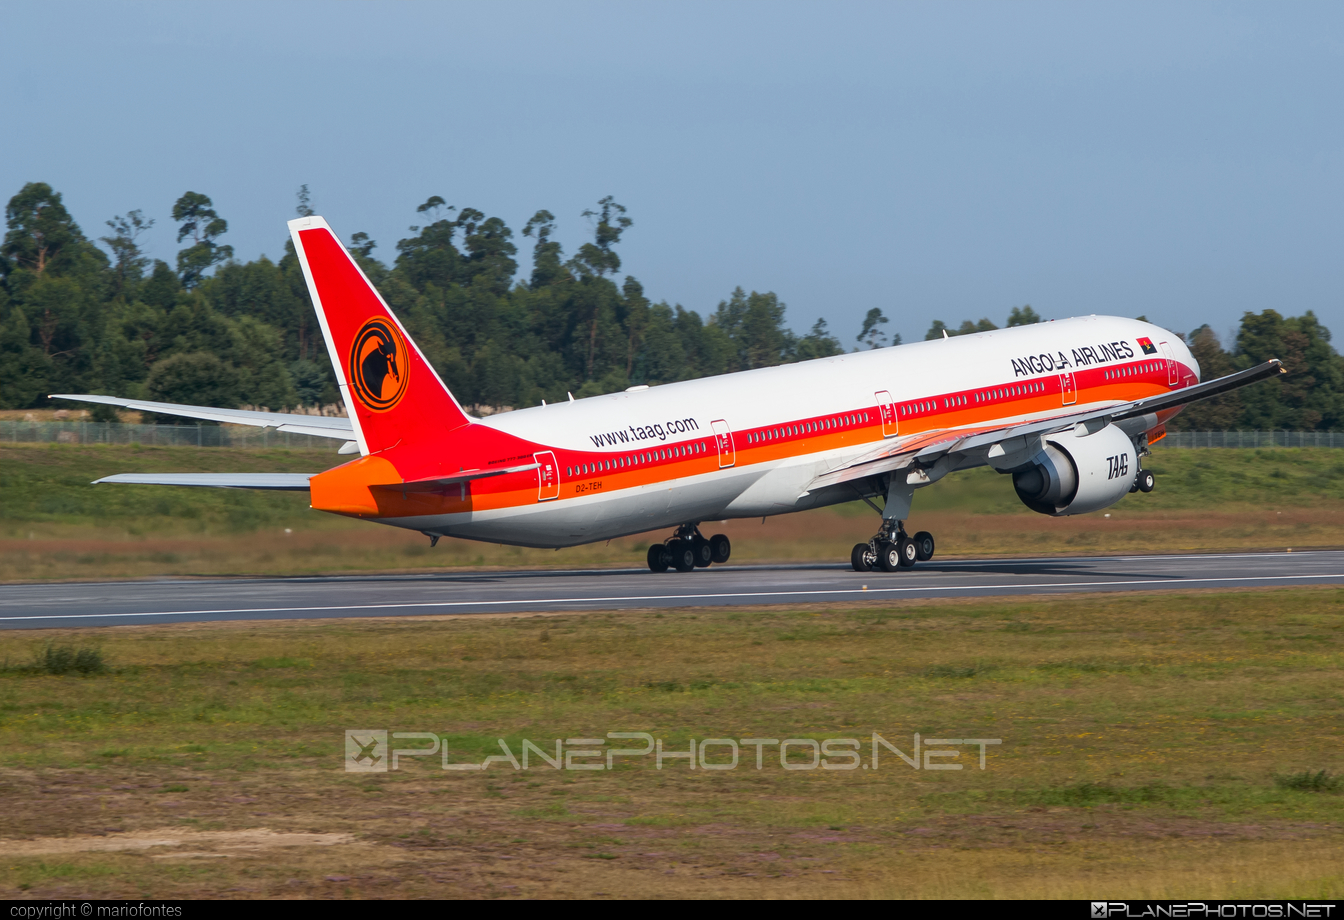 Boeing 777-300ER - D2-TEH operated by TAAG Linhas Aéreas de Angola #b777 #b777er #boeing #boeing777 #tripleseven